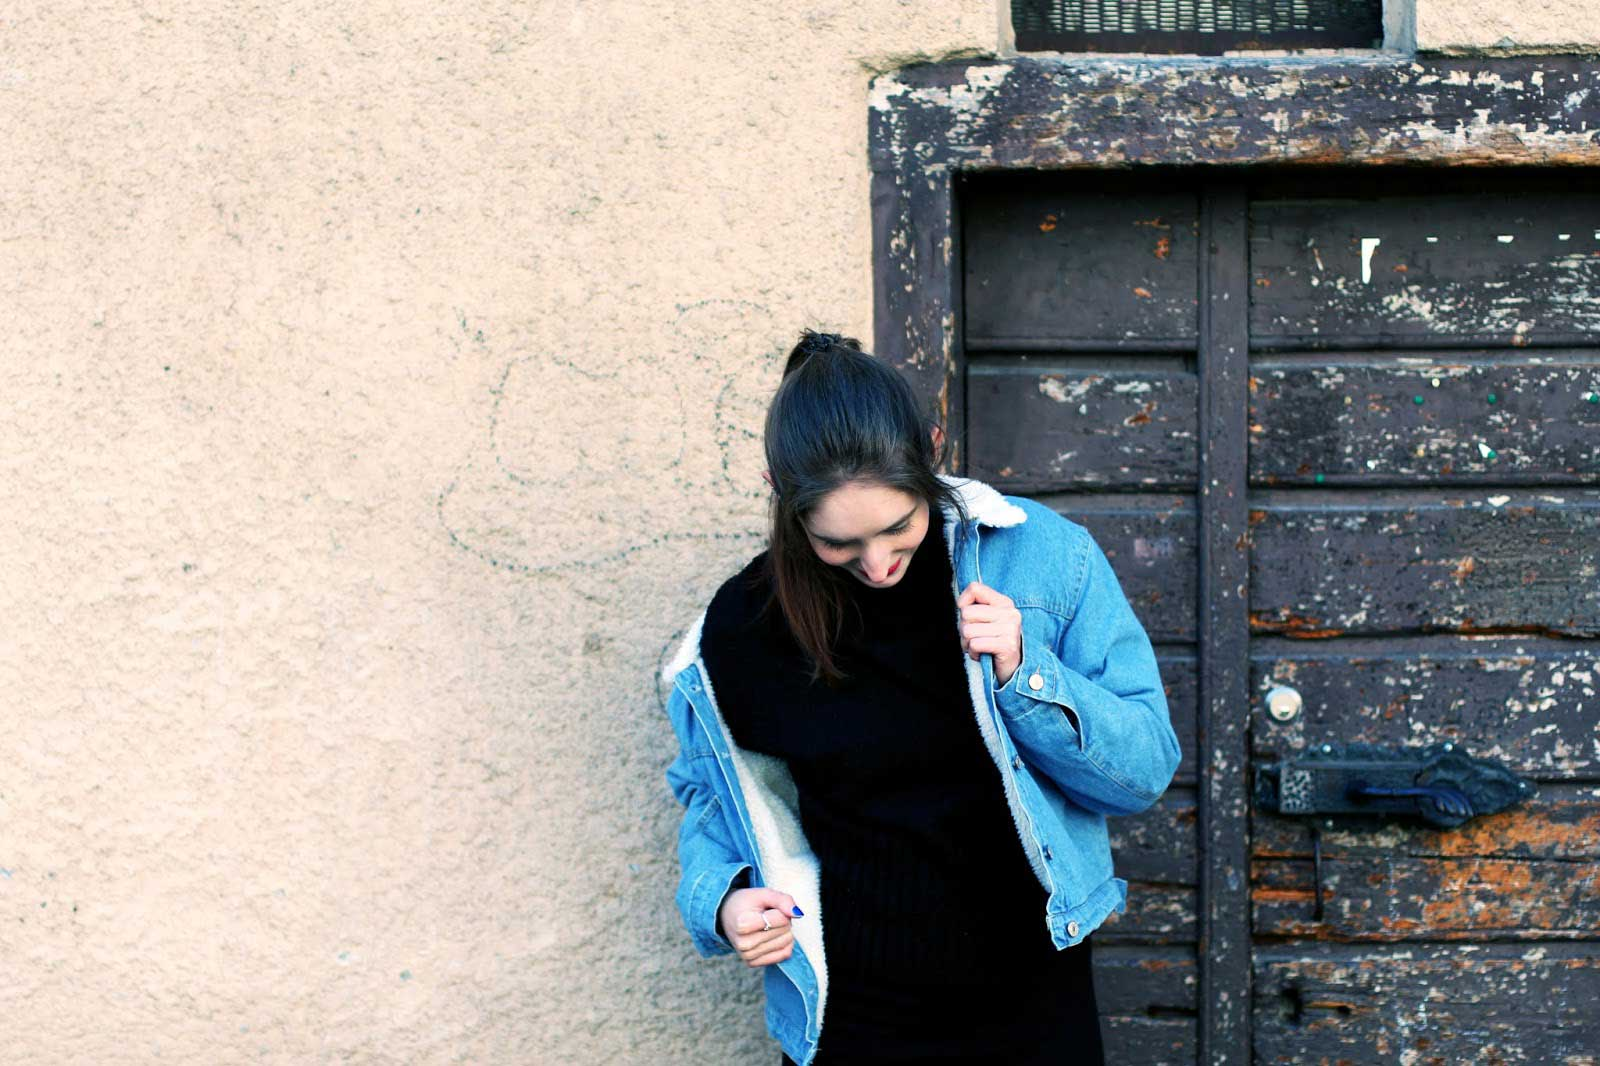 denim-jacket-zaful-outfit-swiss-fashion-blogger-spring-trend-002